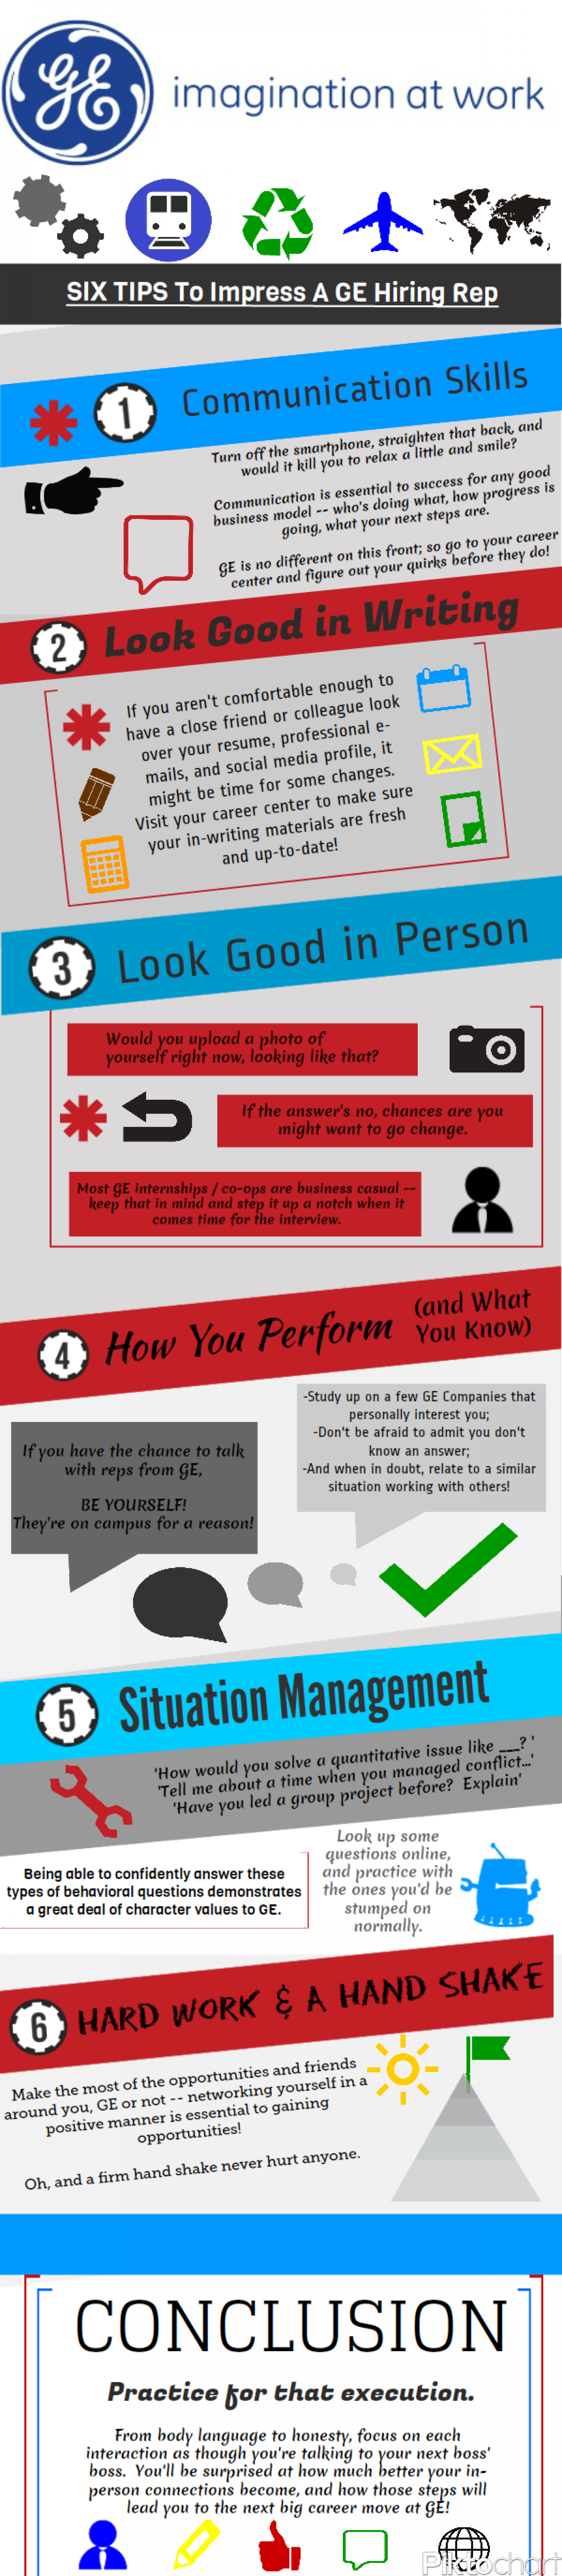 Tips To Impress A Hiring Rep Infographic